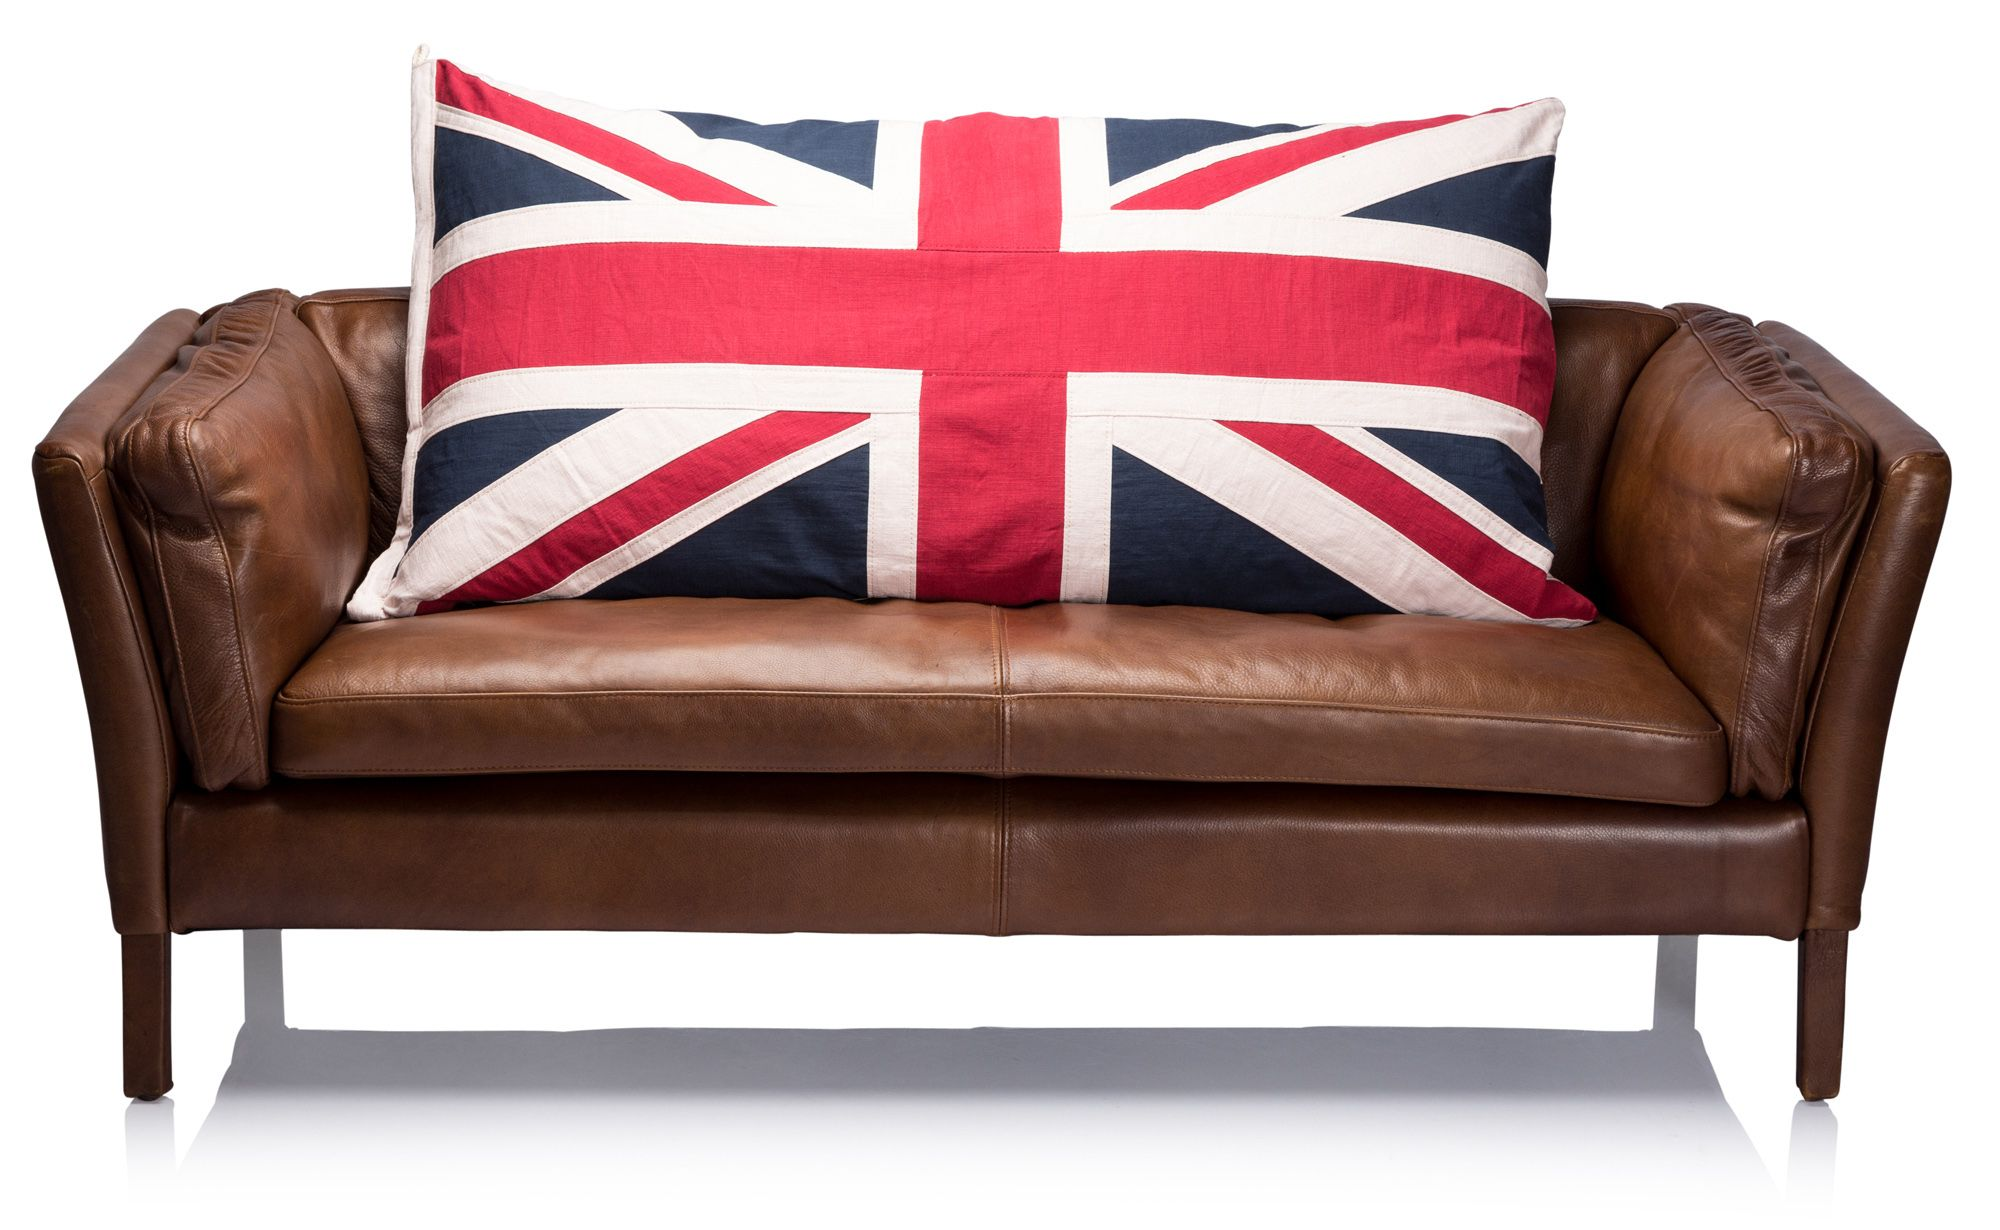 COM - Jack Large Scatter Cushion, Union Jack Charcoal. Submitted by Sophia.  'Received my lovely cushion a few days ago.' | Unionjack | Pinterest | G